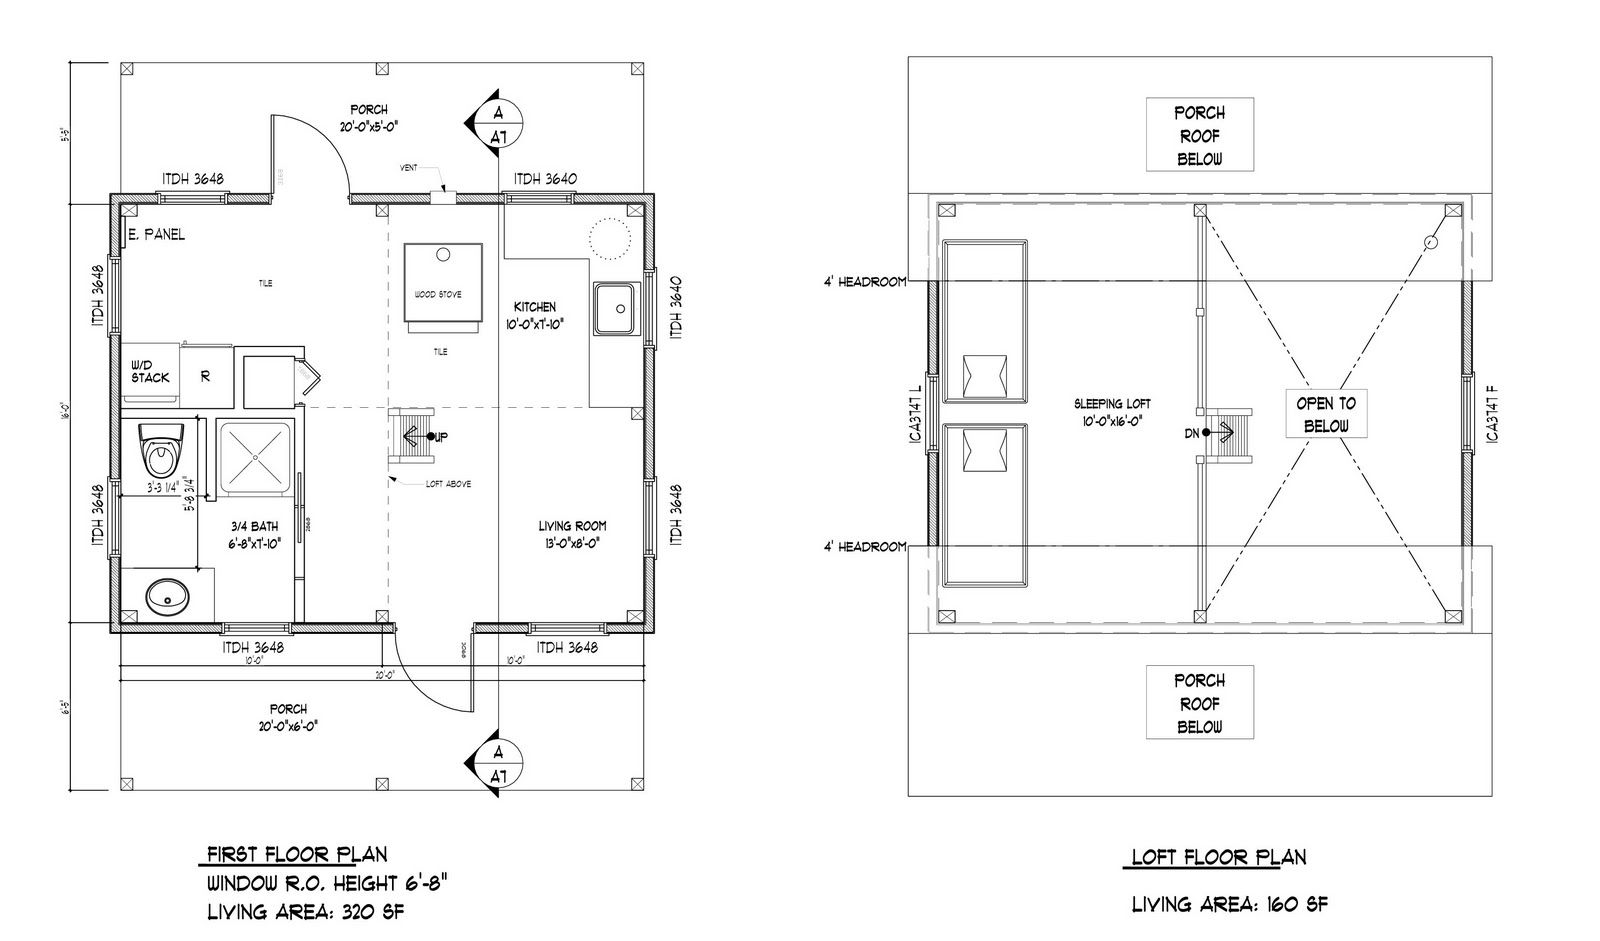 Pin By Kimberly Tindell On Cabin Cabin Floor Plans Floor Plans Timber Frame Cabin